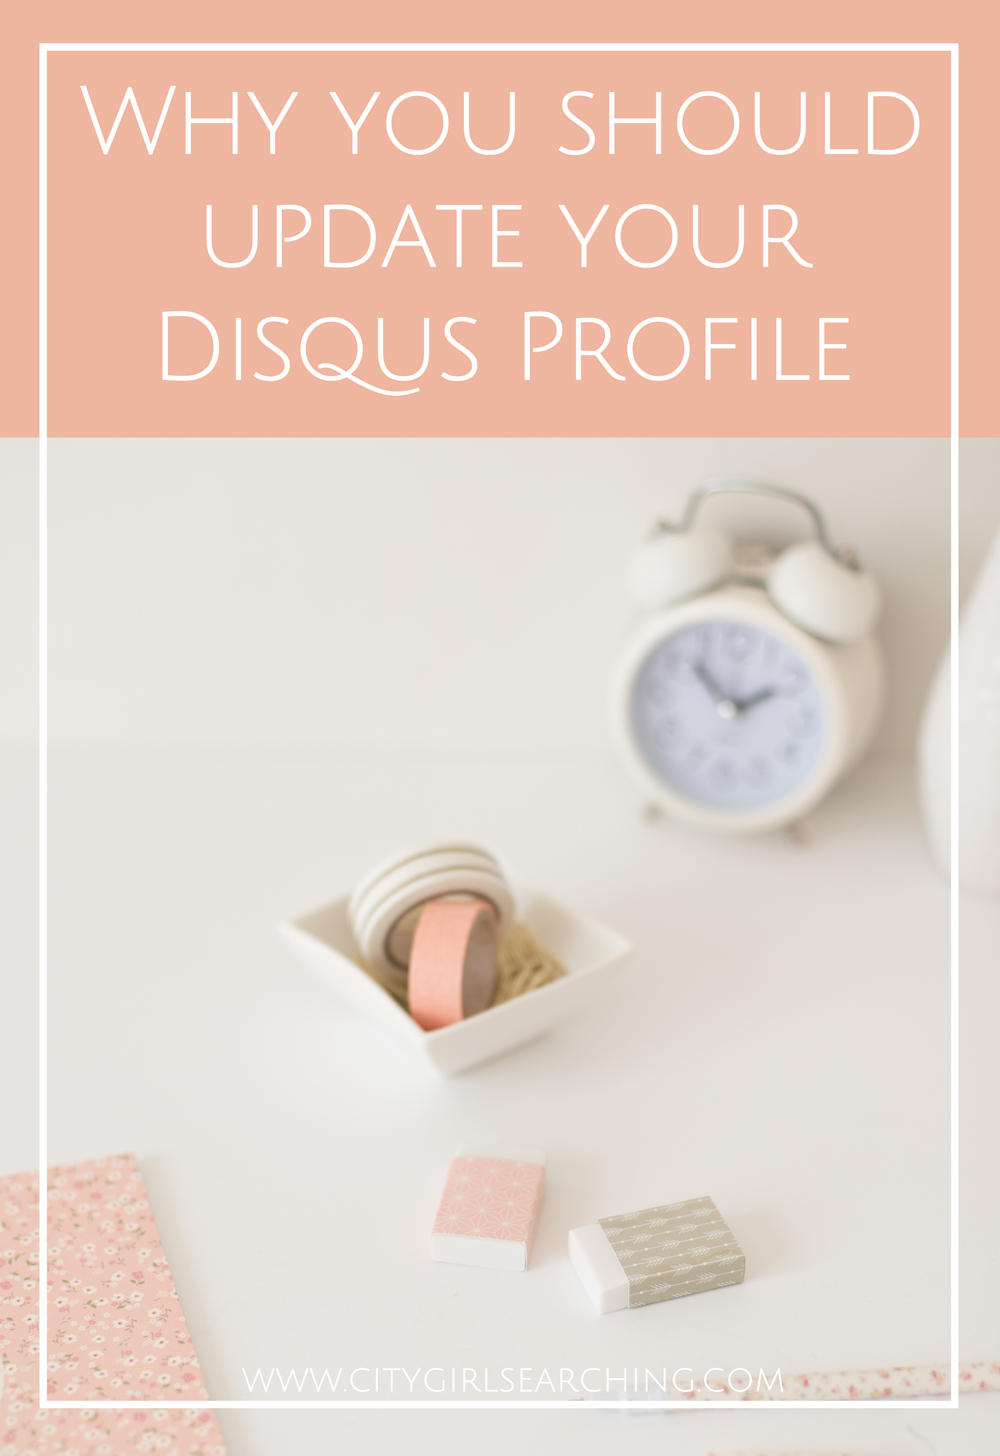 Help People Find and Connect with you on Disqus why you should update your disqus profile